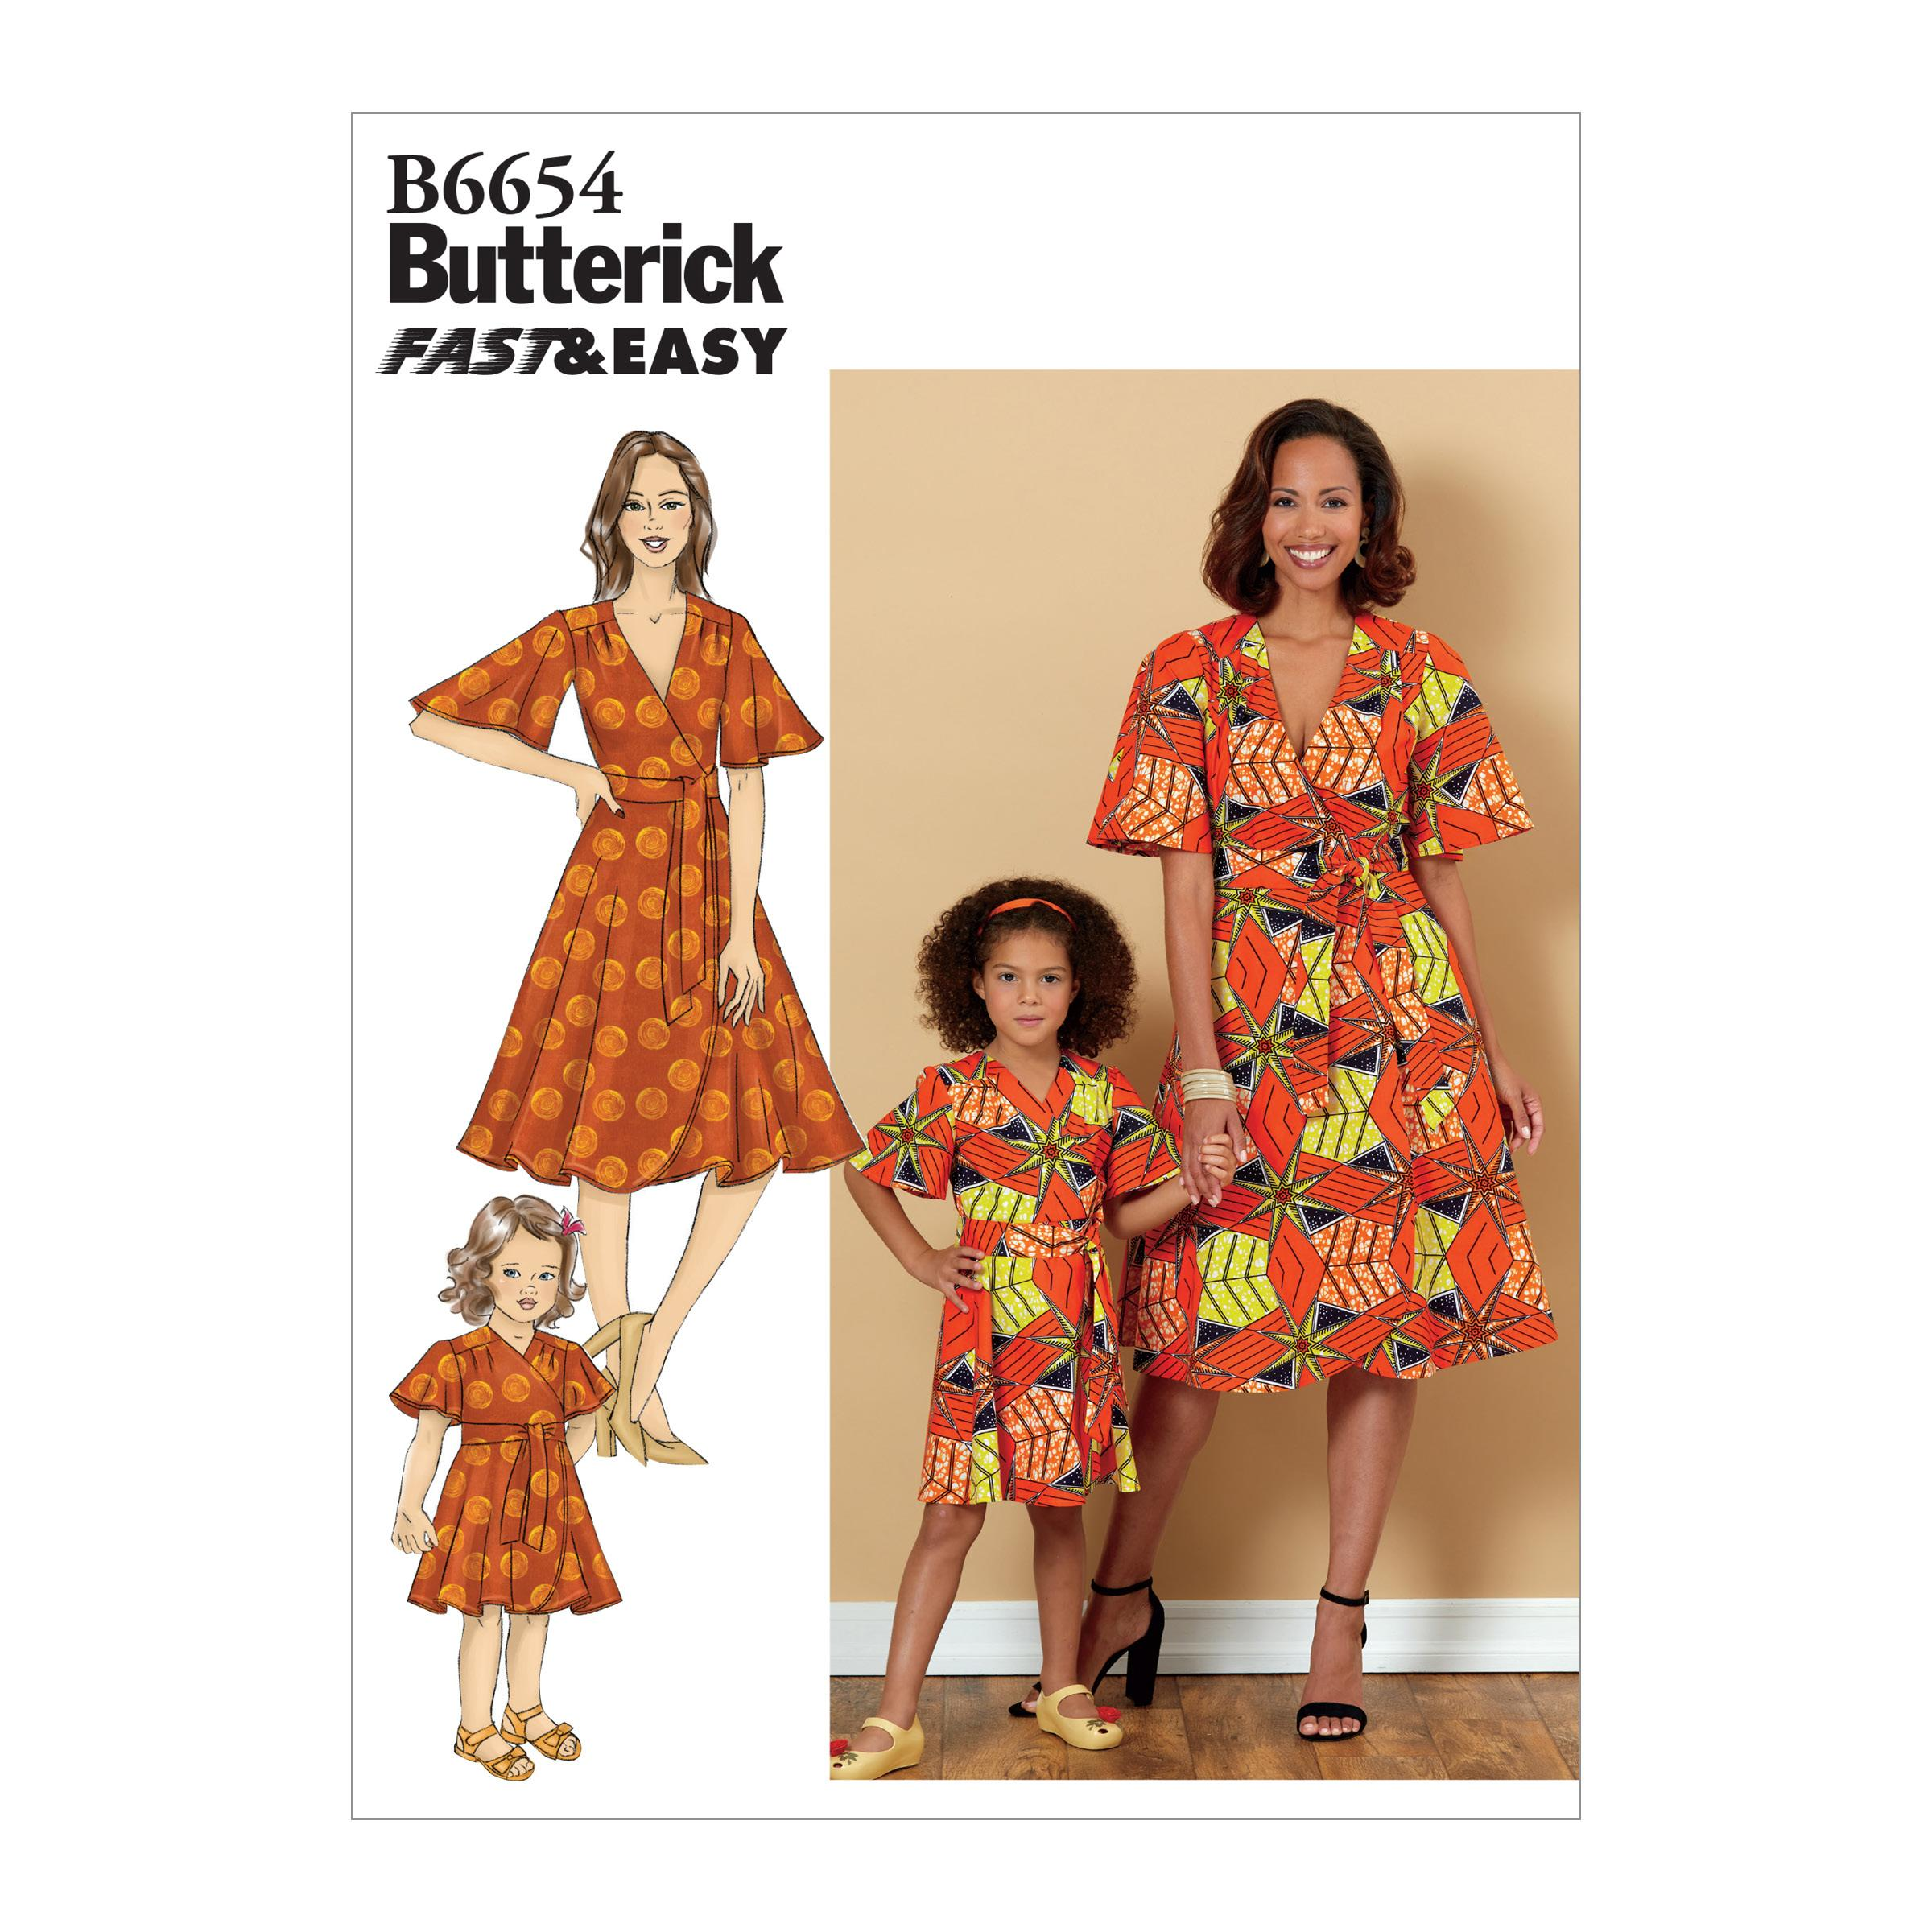 Butterick B6654 Misses', Children's and Girl's Dress and Sash